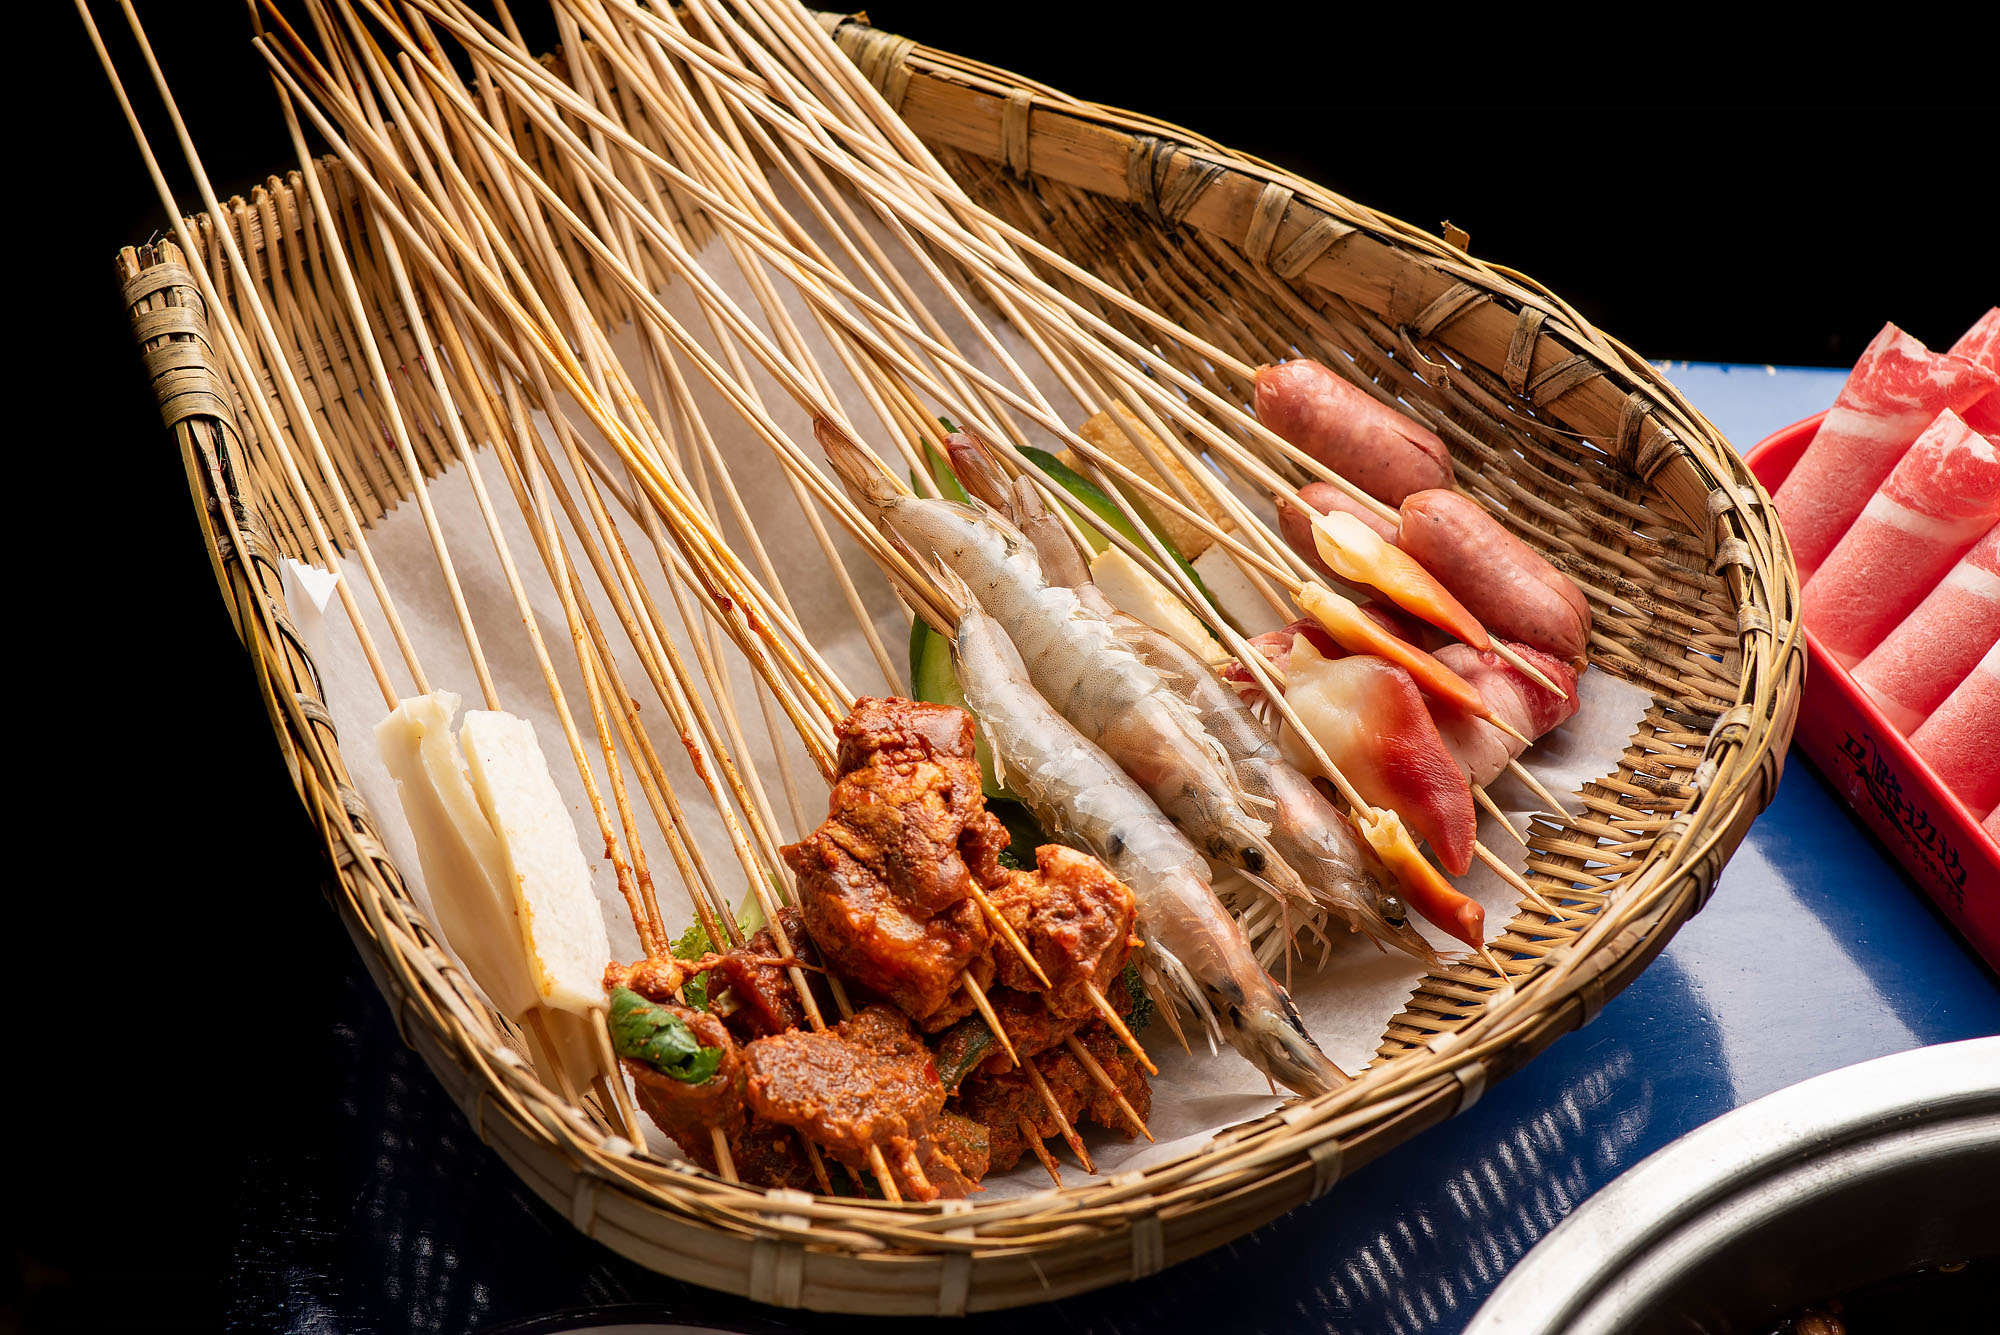 Skewers of shrimp and meats at Malubianbian.